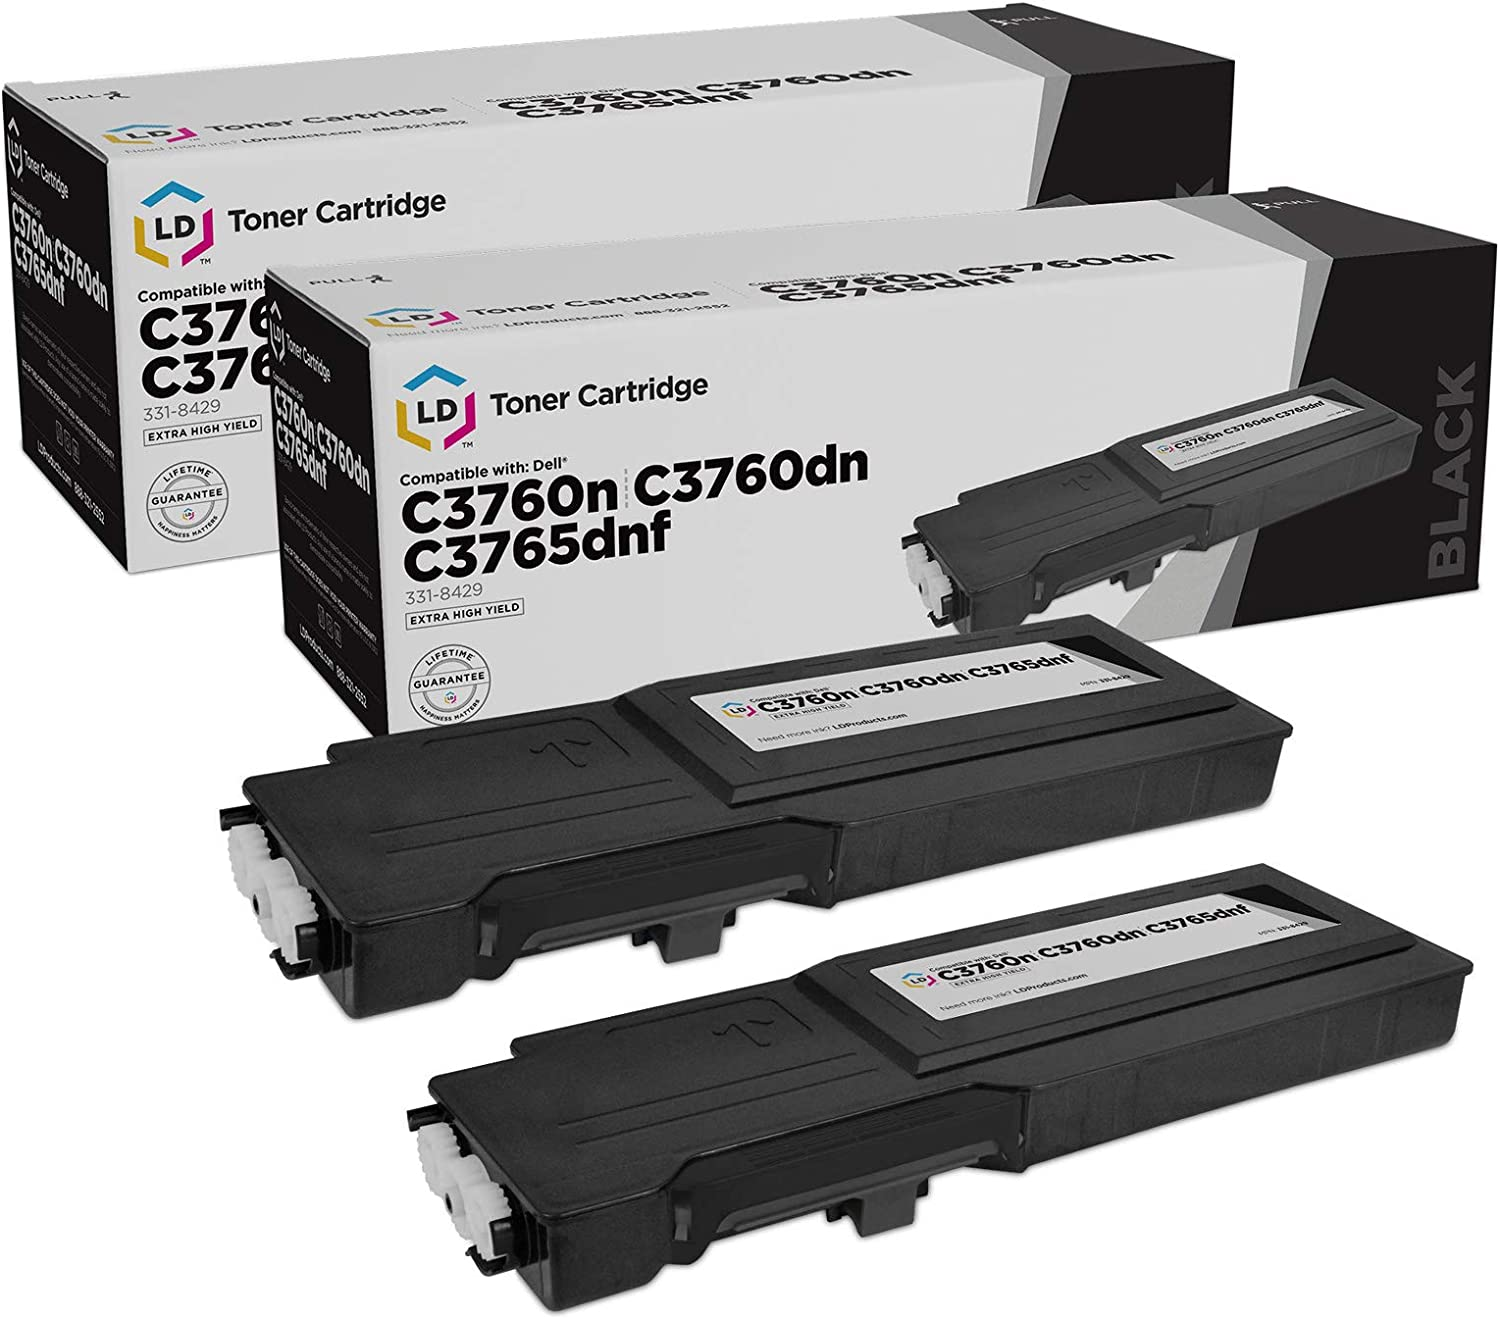 LD Compatible Toner Cartridge Replacement for Dell 331-8429 W8D60 Extra High Yield (Black, 2-Pack)